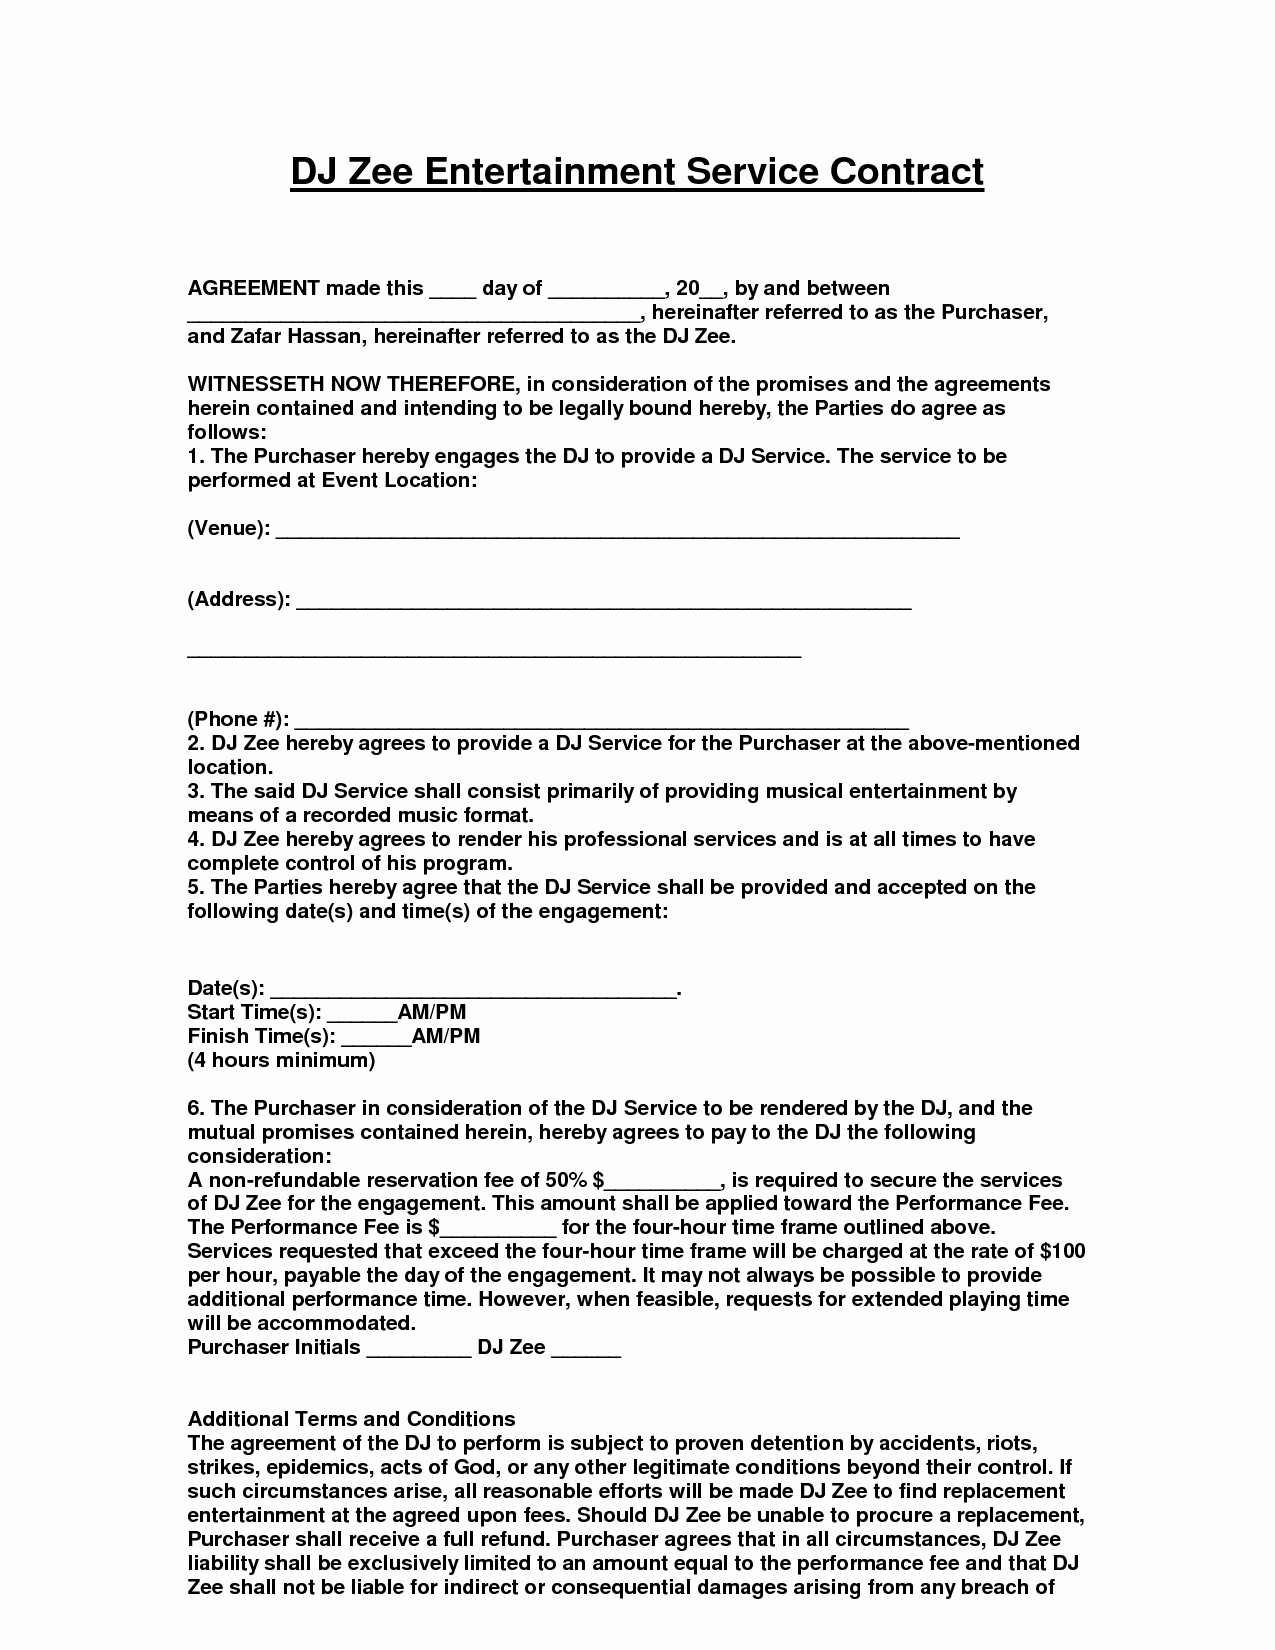 Free Dj Contract Template Lovely Entertainment Contract Agreement Images D J Contracts